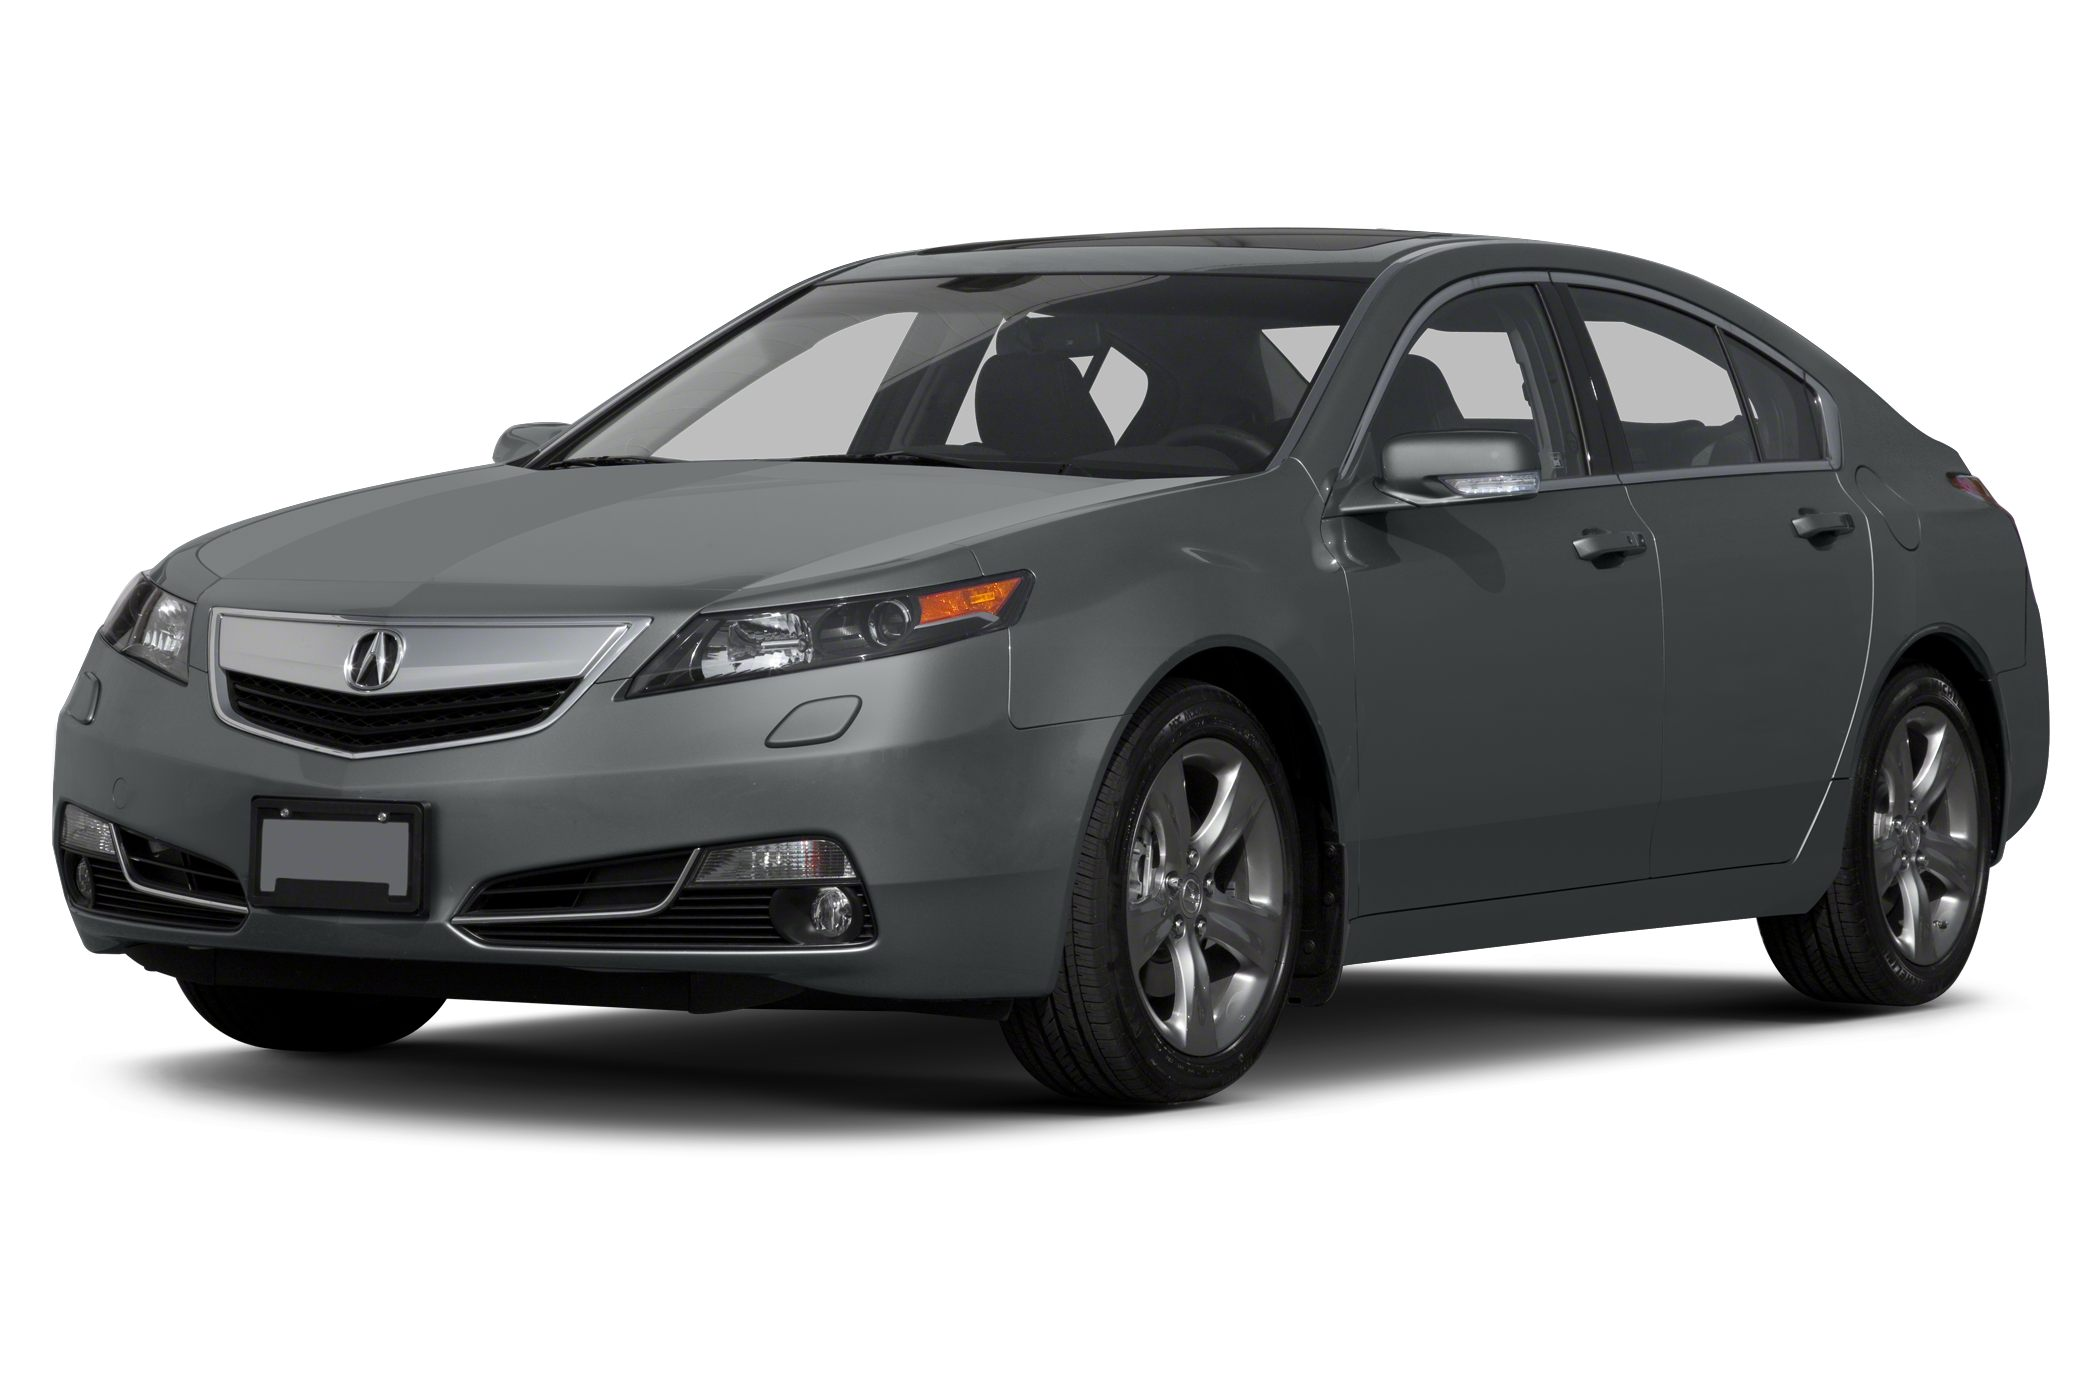 2013 Acura TL 35 Technology WE SELL OUR VEHICLES AT WHOLESALE PRICES AND STAND BEHIND OUR CARS